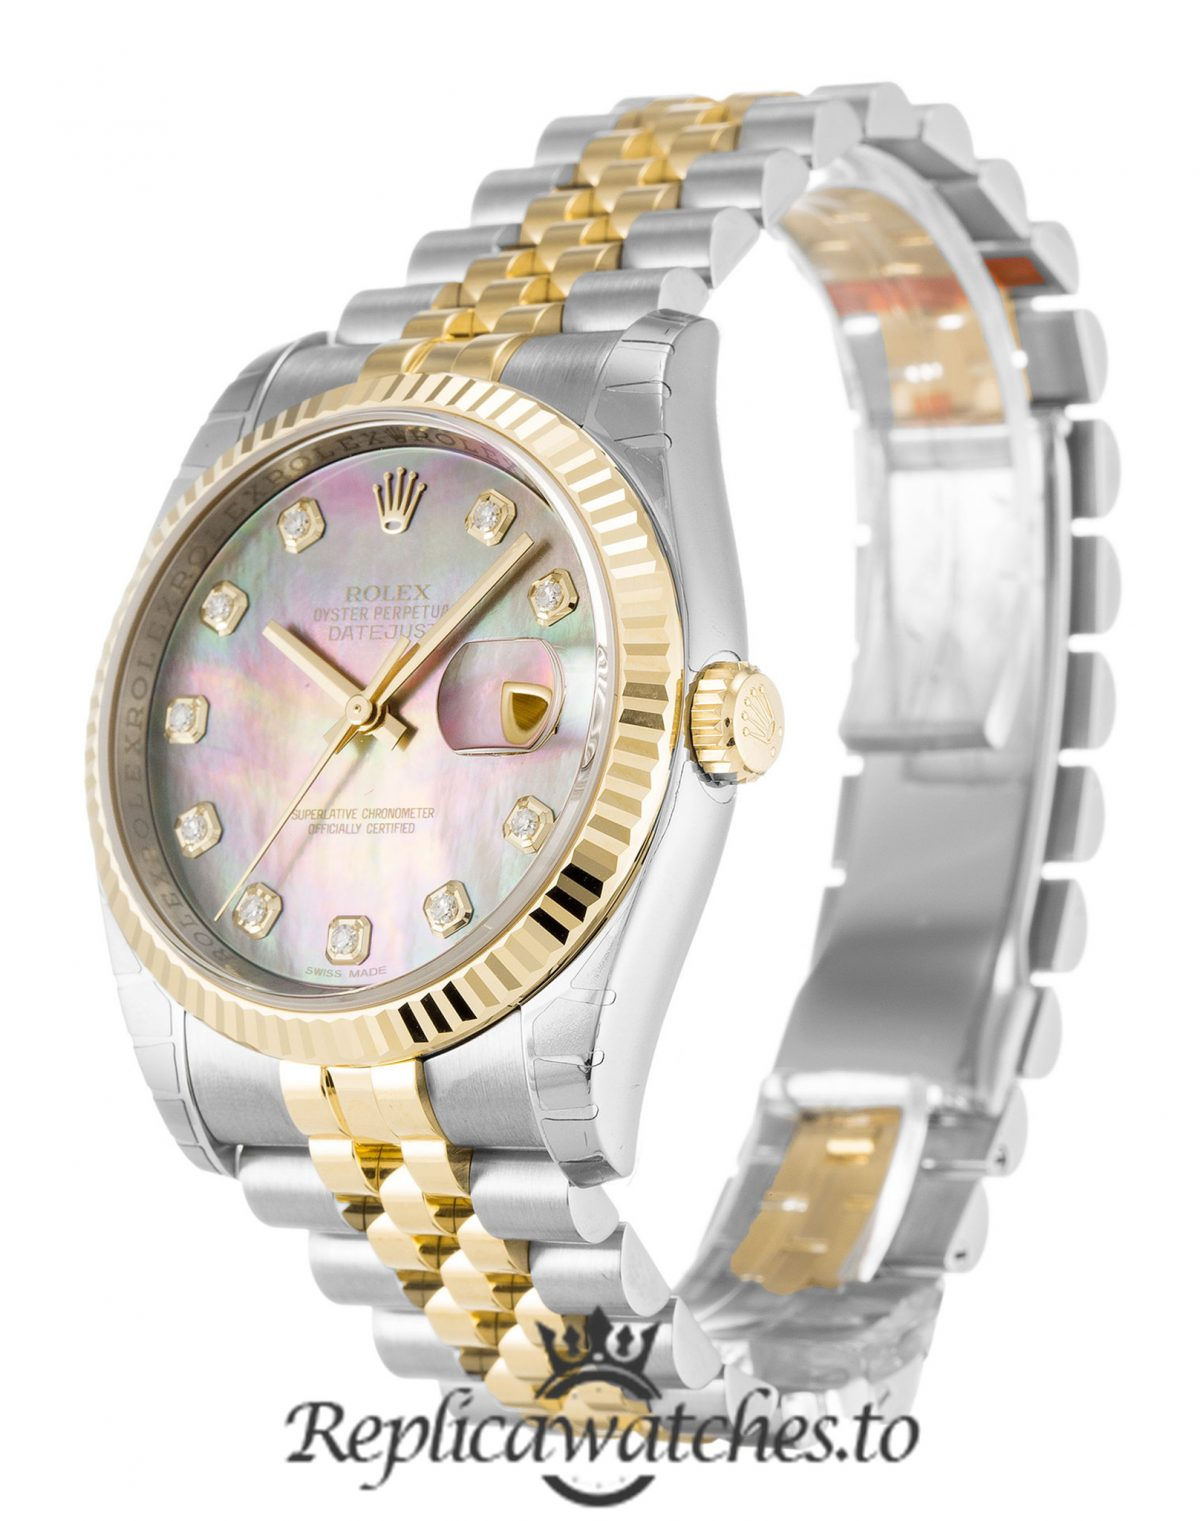 Rolex Datejust Replica 116233 001 Mother of Pearl Dial 36MM